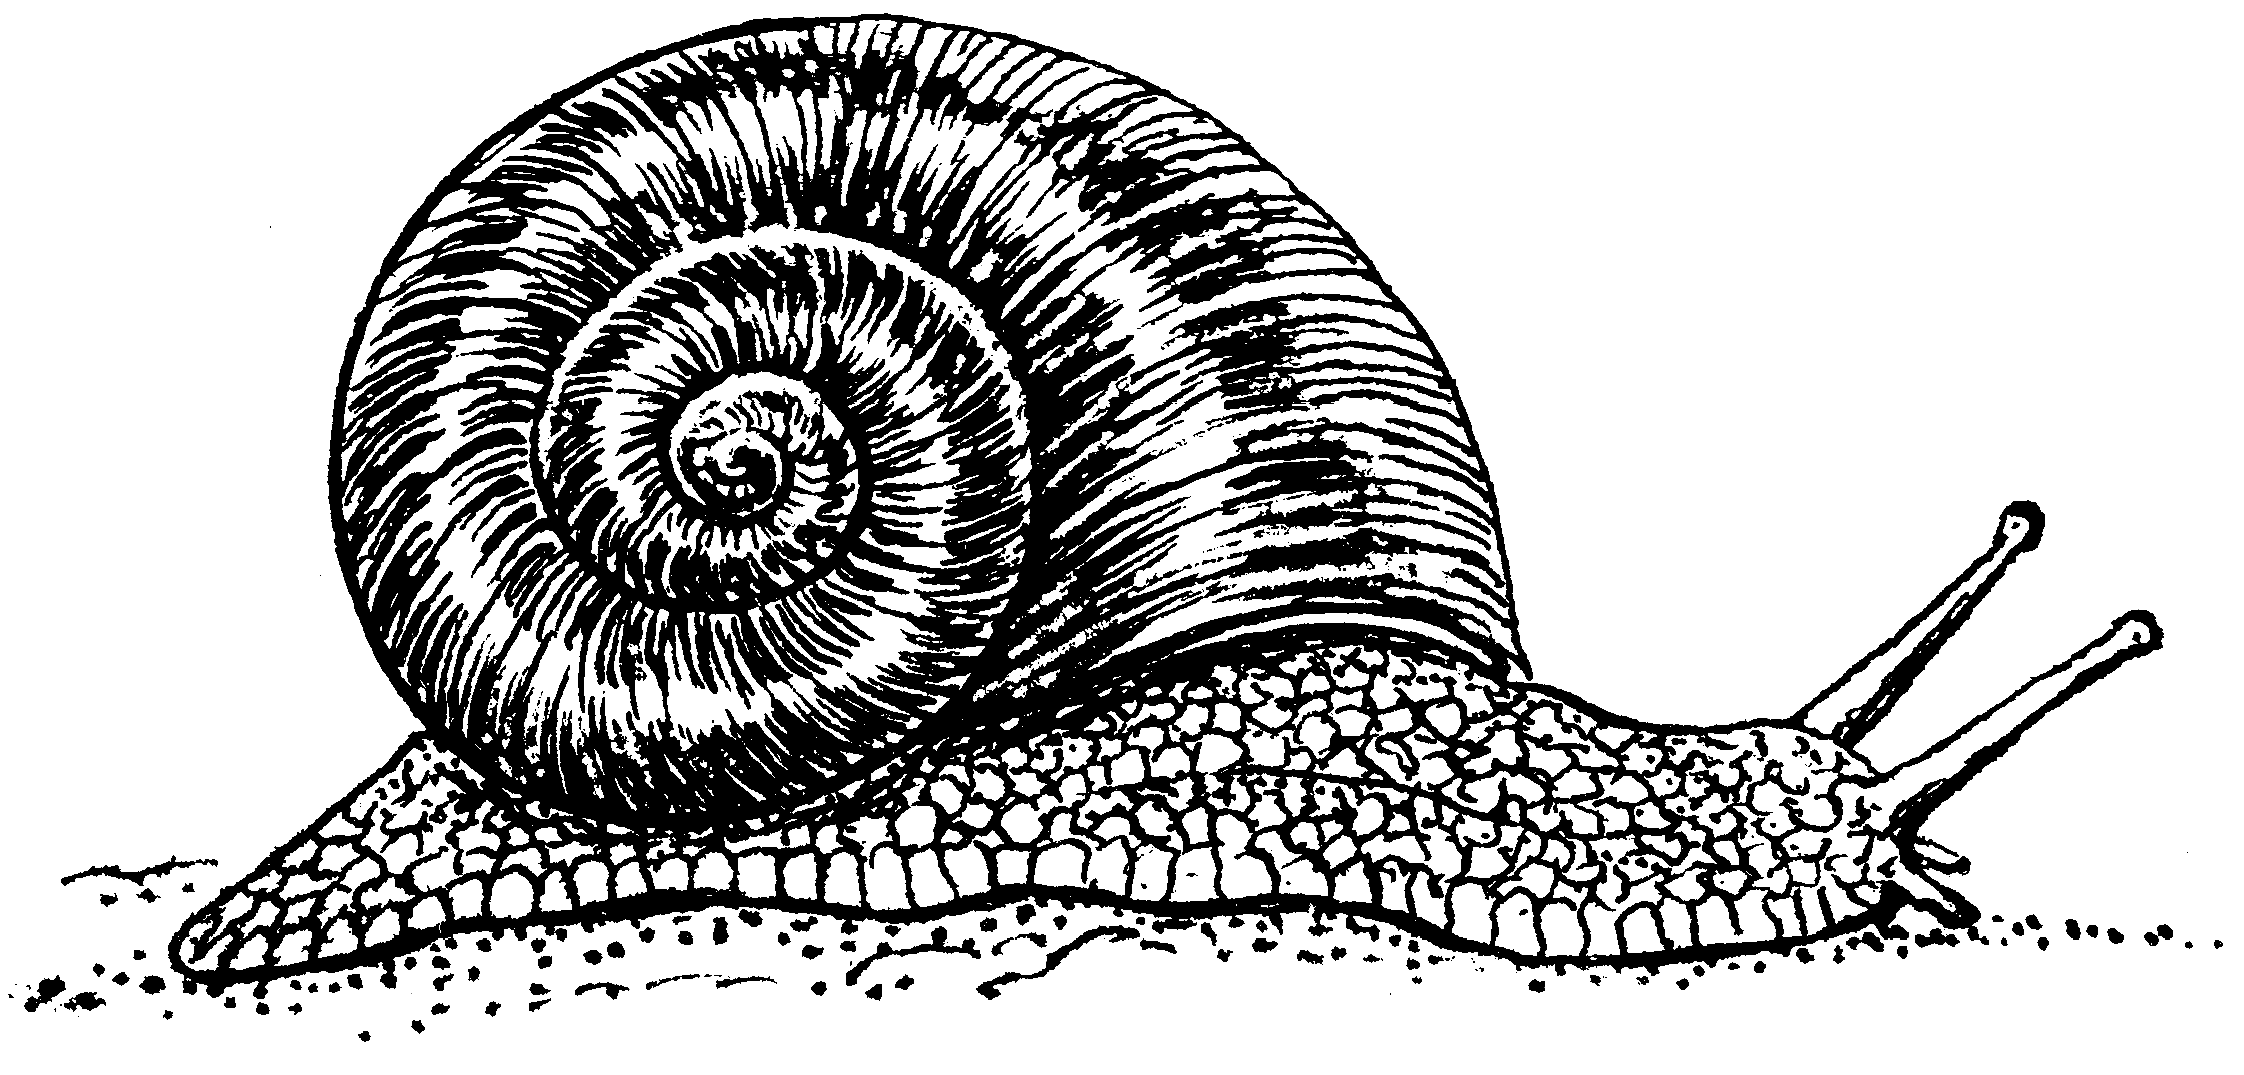 File:Snail (PSF).png - PNG Snail Black And White